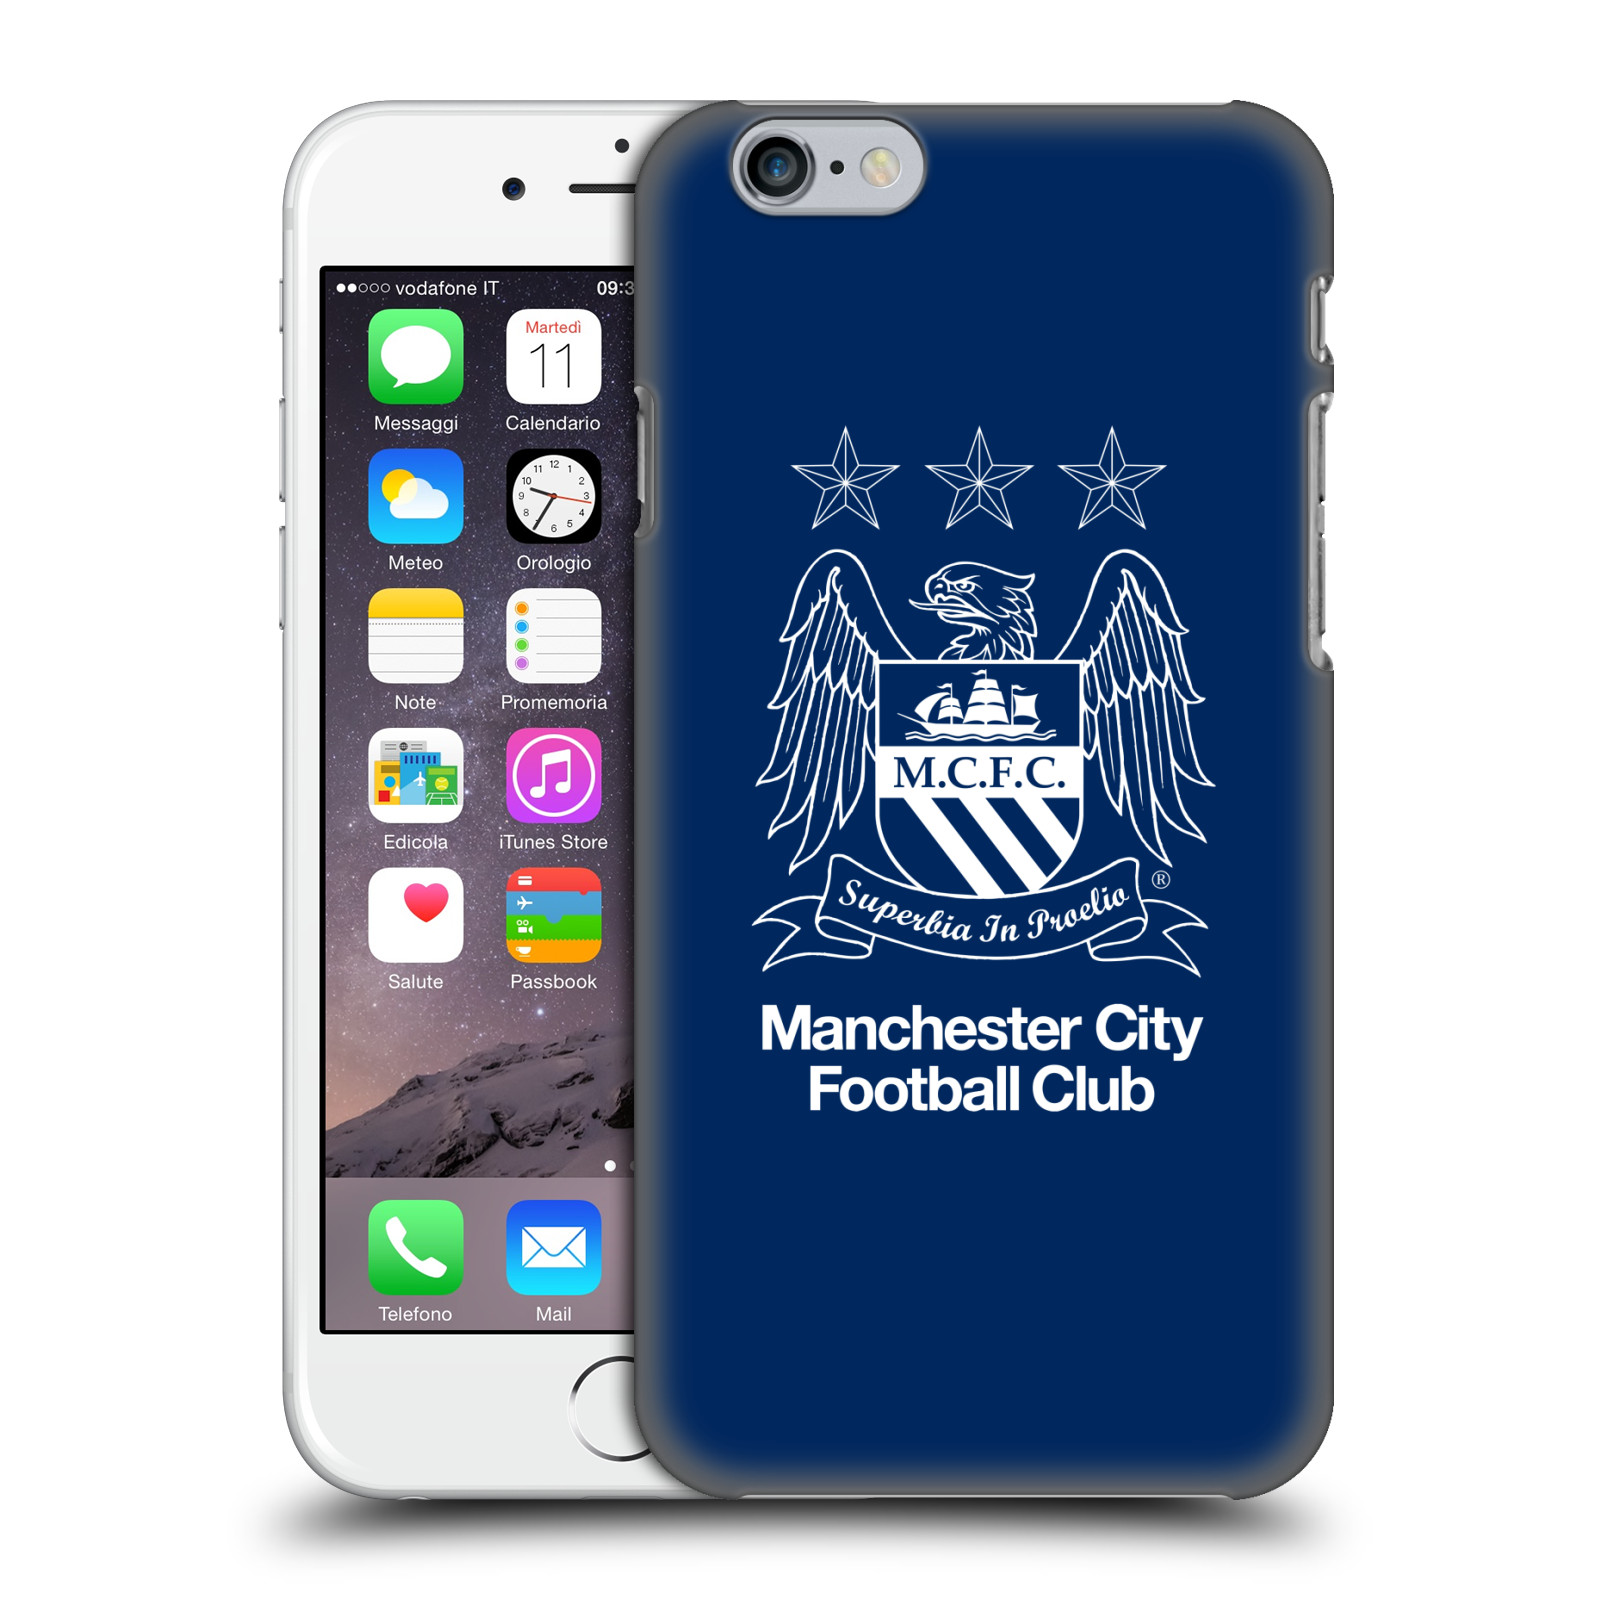 Manchester City FC MCFC Crest-Outline White on Obsidian